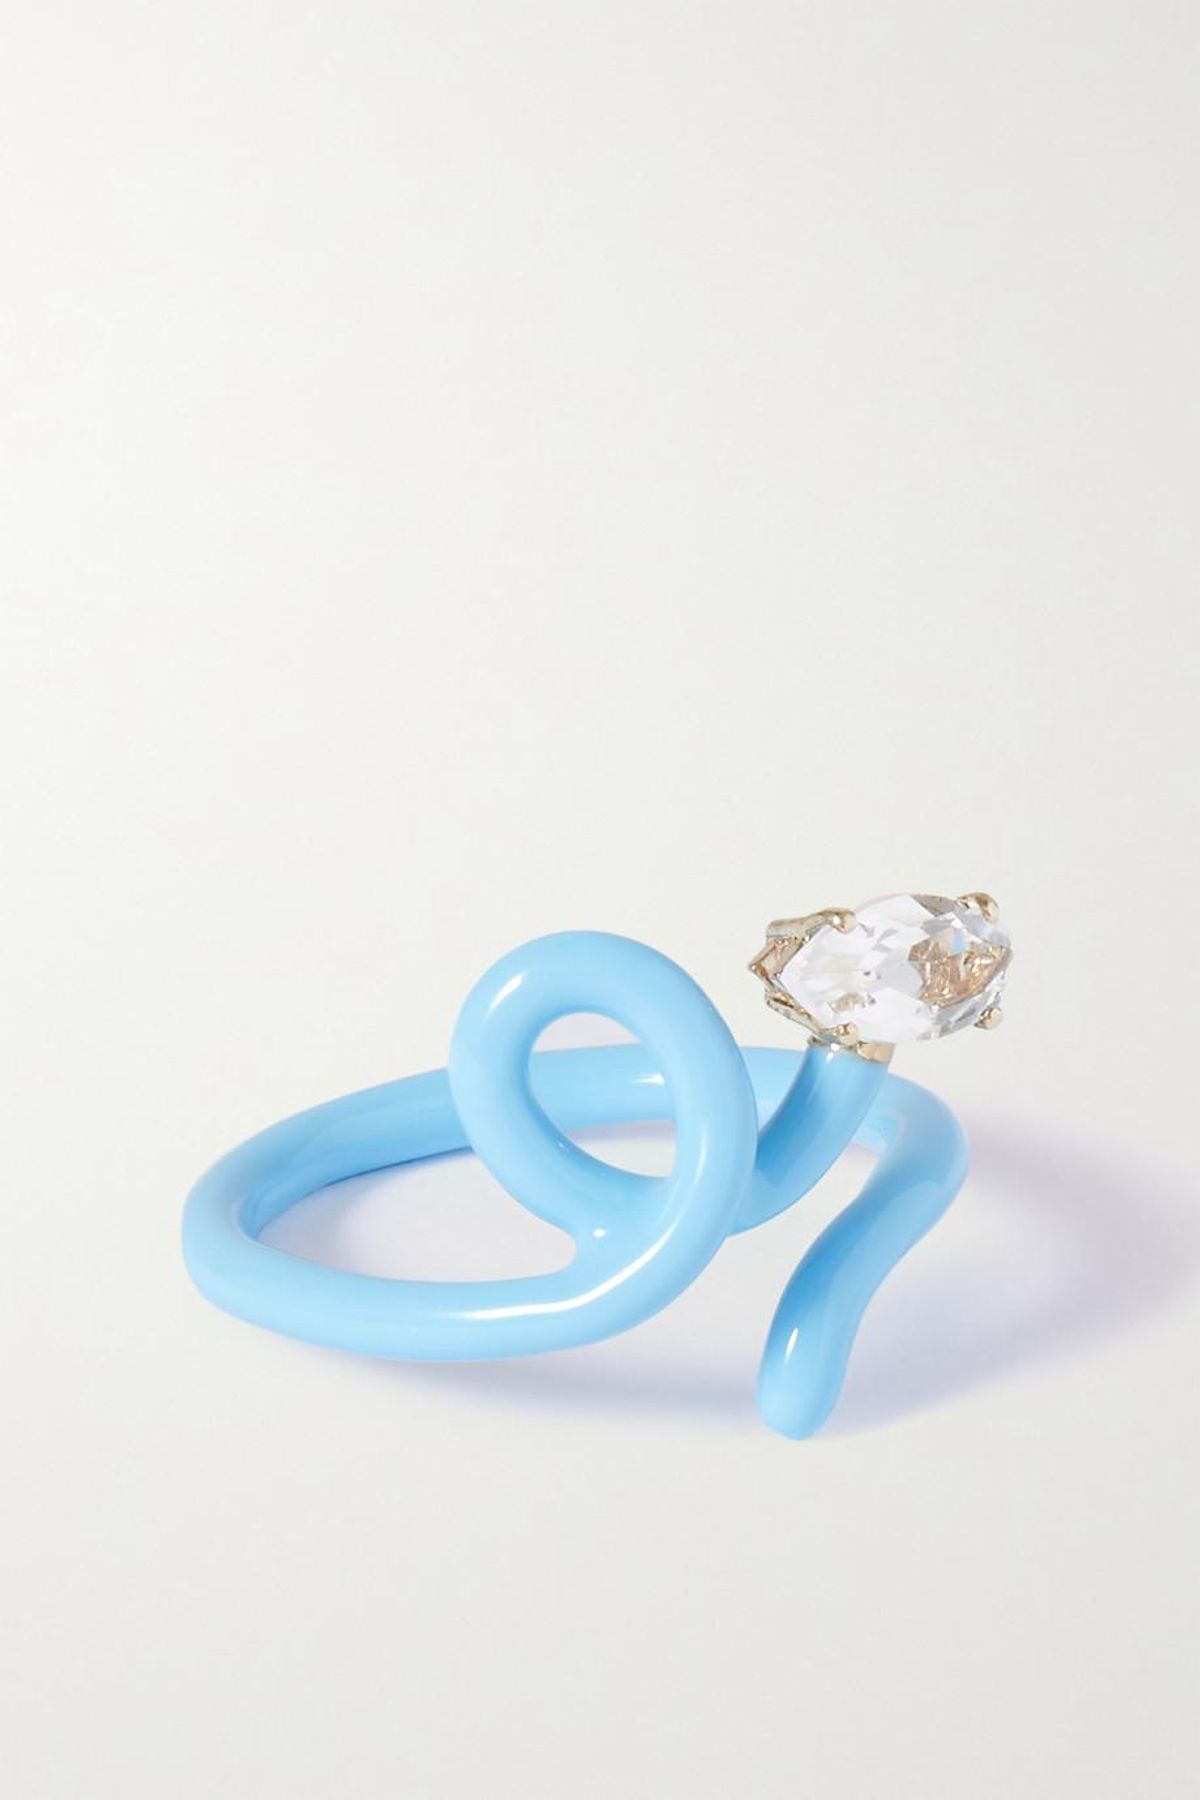 Baby Vine Tendril Gold, Silver, Enamel, and Rock Crystal Ring